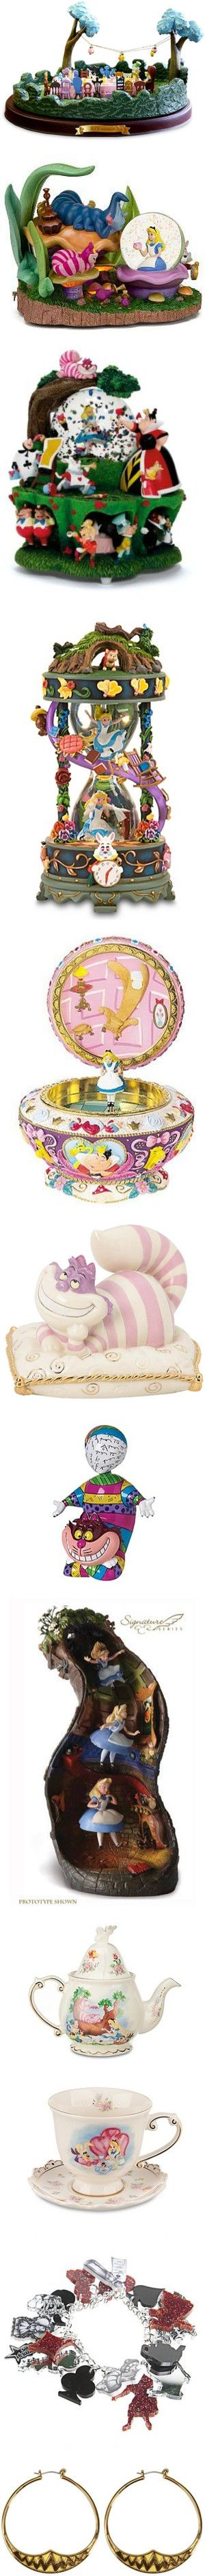 Merchandise in Wonderland by bigcitygoil on Polyvore featuring alice, alice in wonderland, disney, home, home decor, disney music box, fall home decor, music home decor, disney home decor and animals